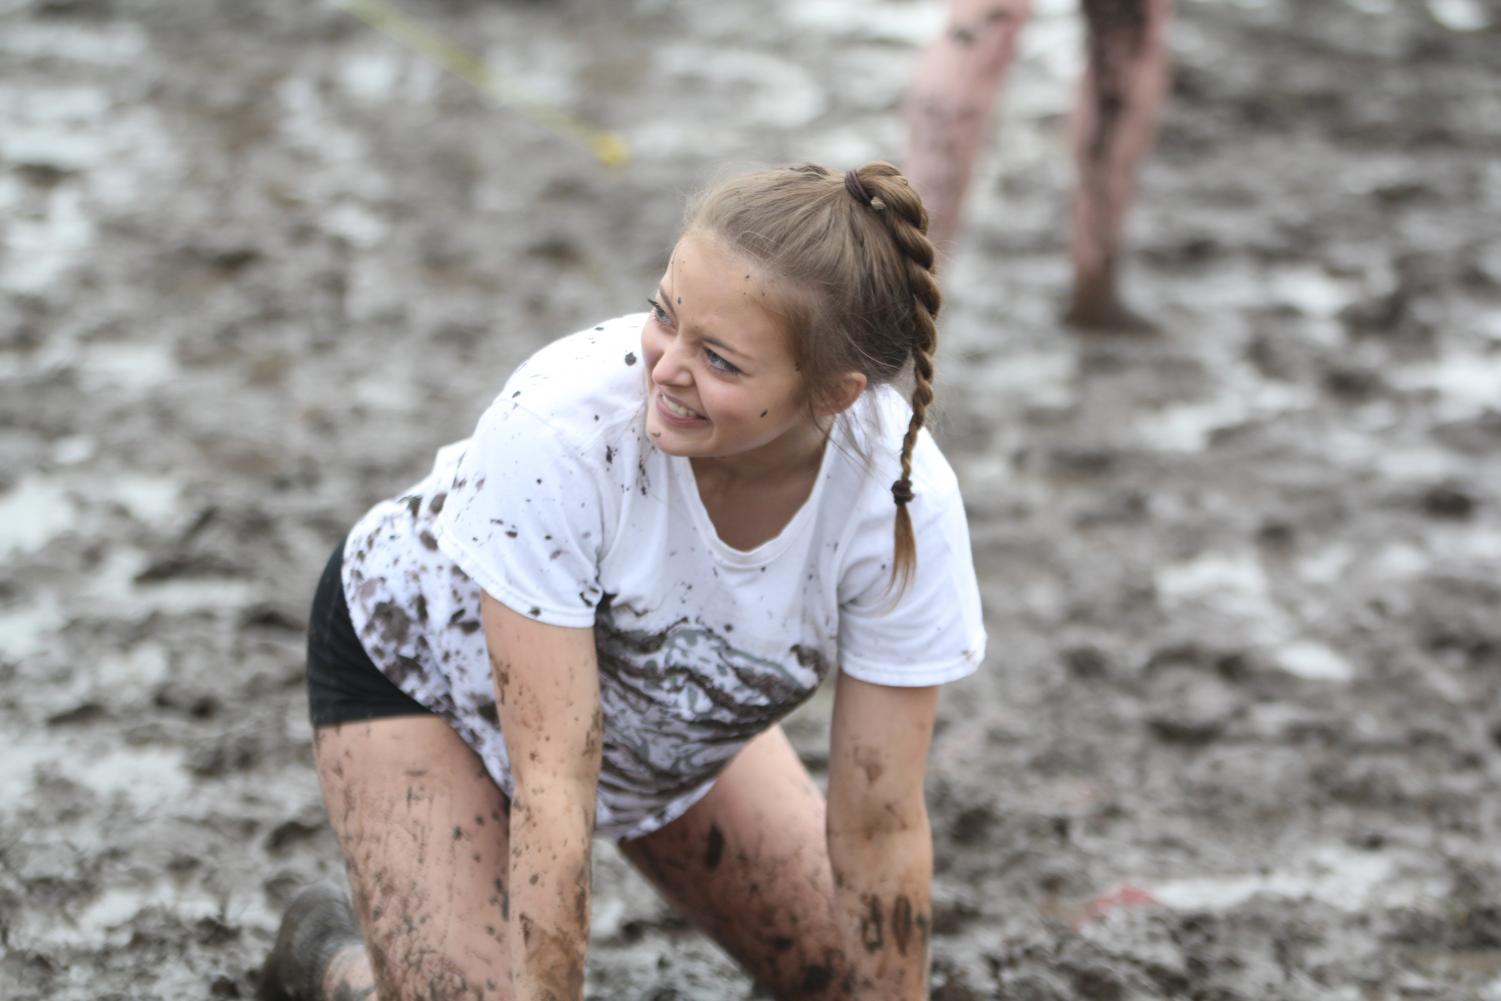 Laughing%2C+freshman+Paige+Totzke+gets+back+up+after+falling+in+the+mud.